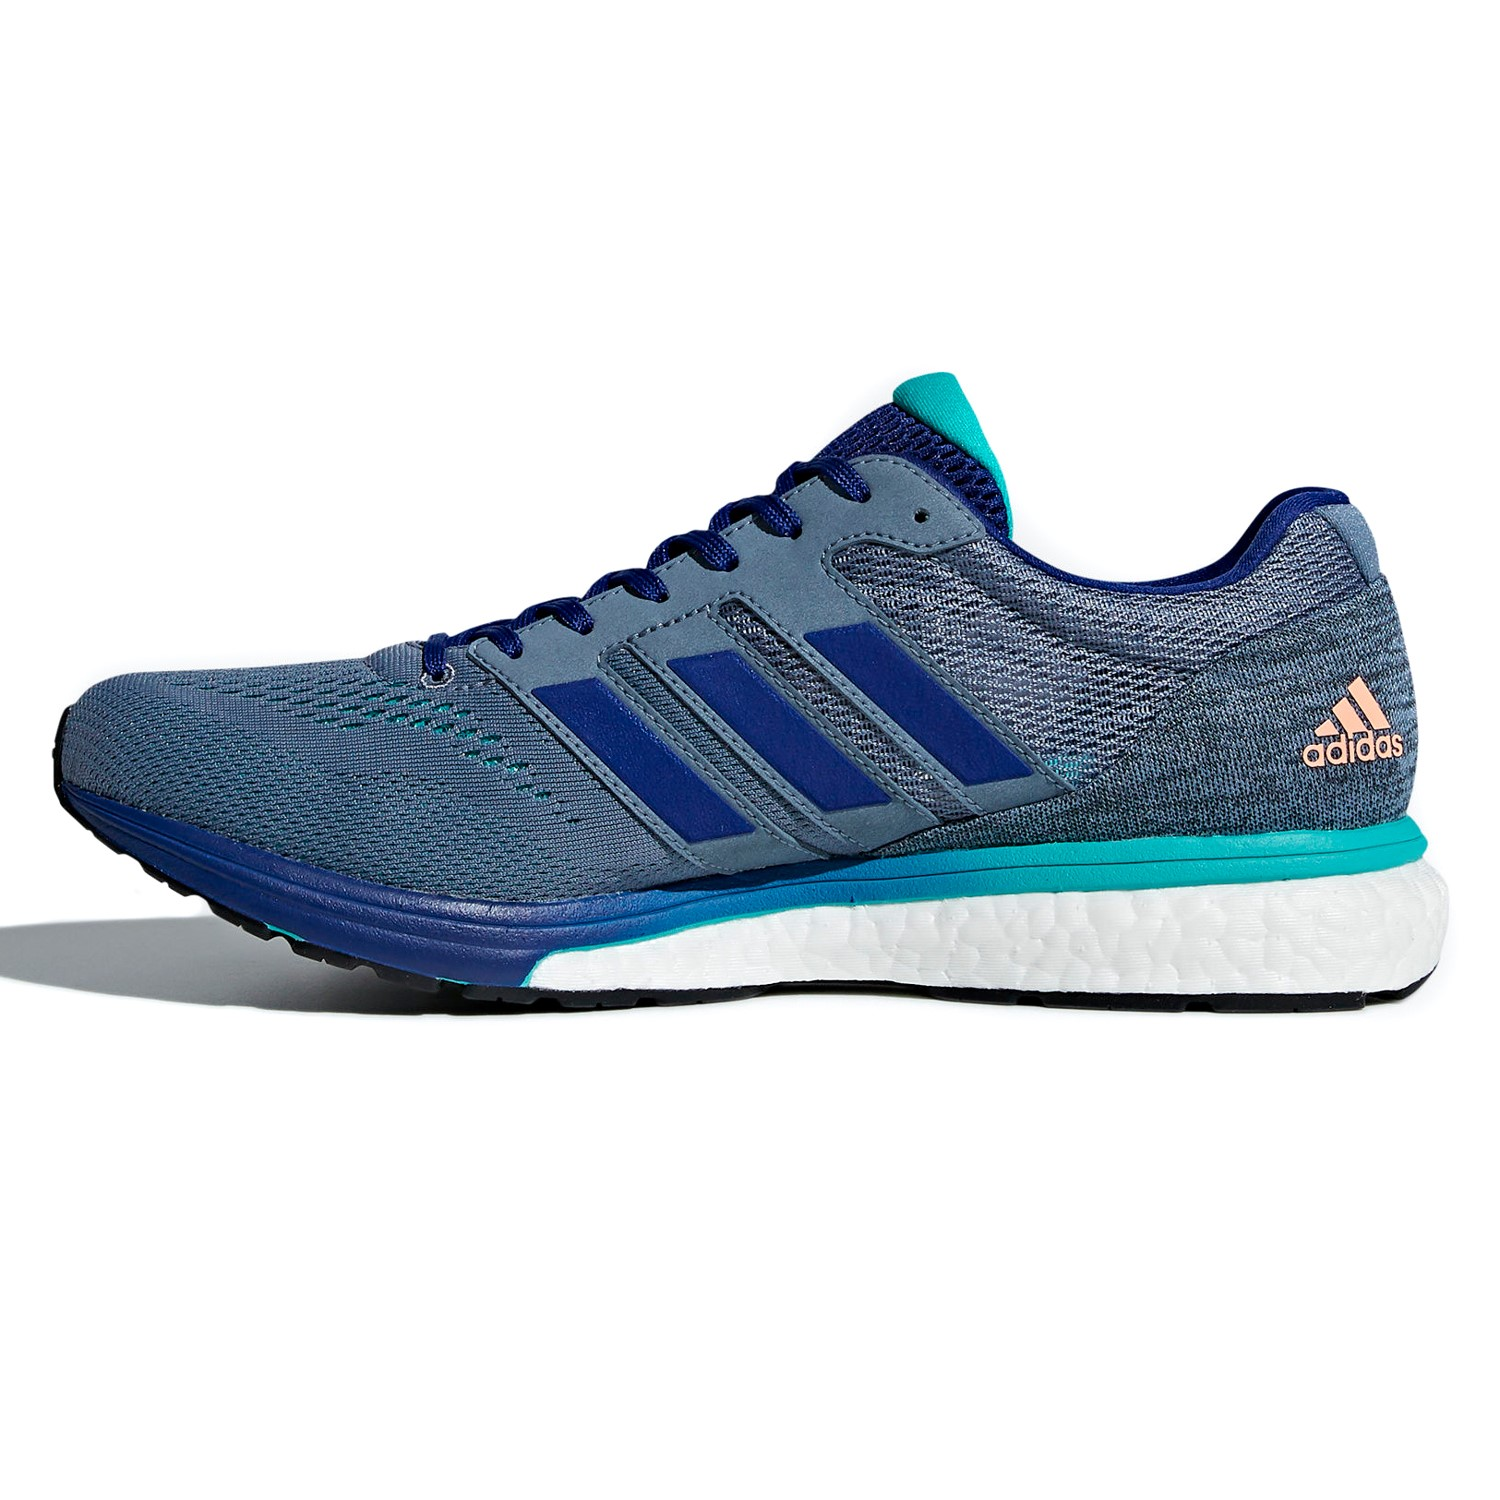 Adidas Adizero Boston 7 - Mens Running Shoes - Raw Steel